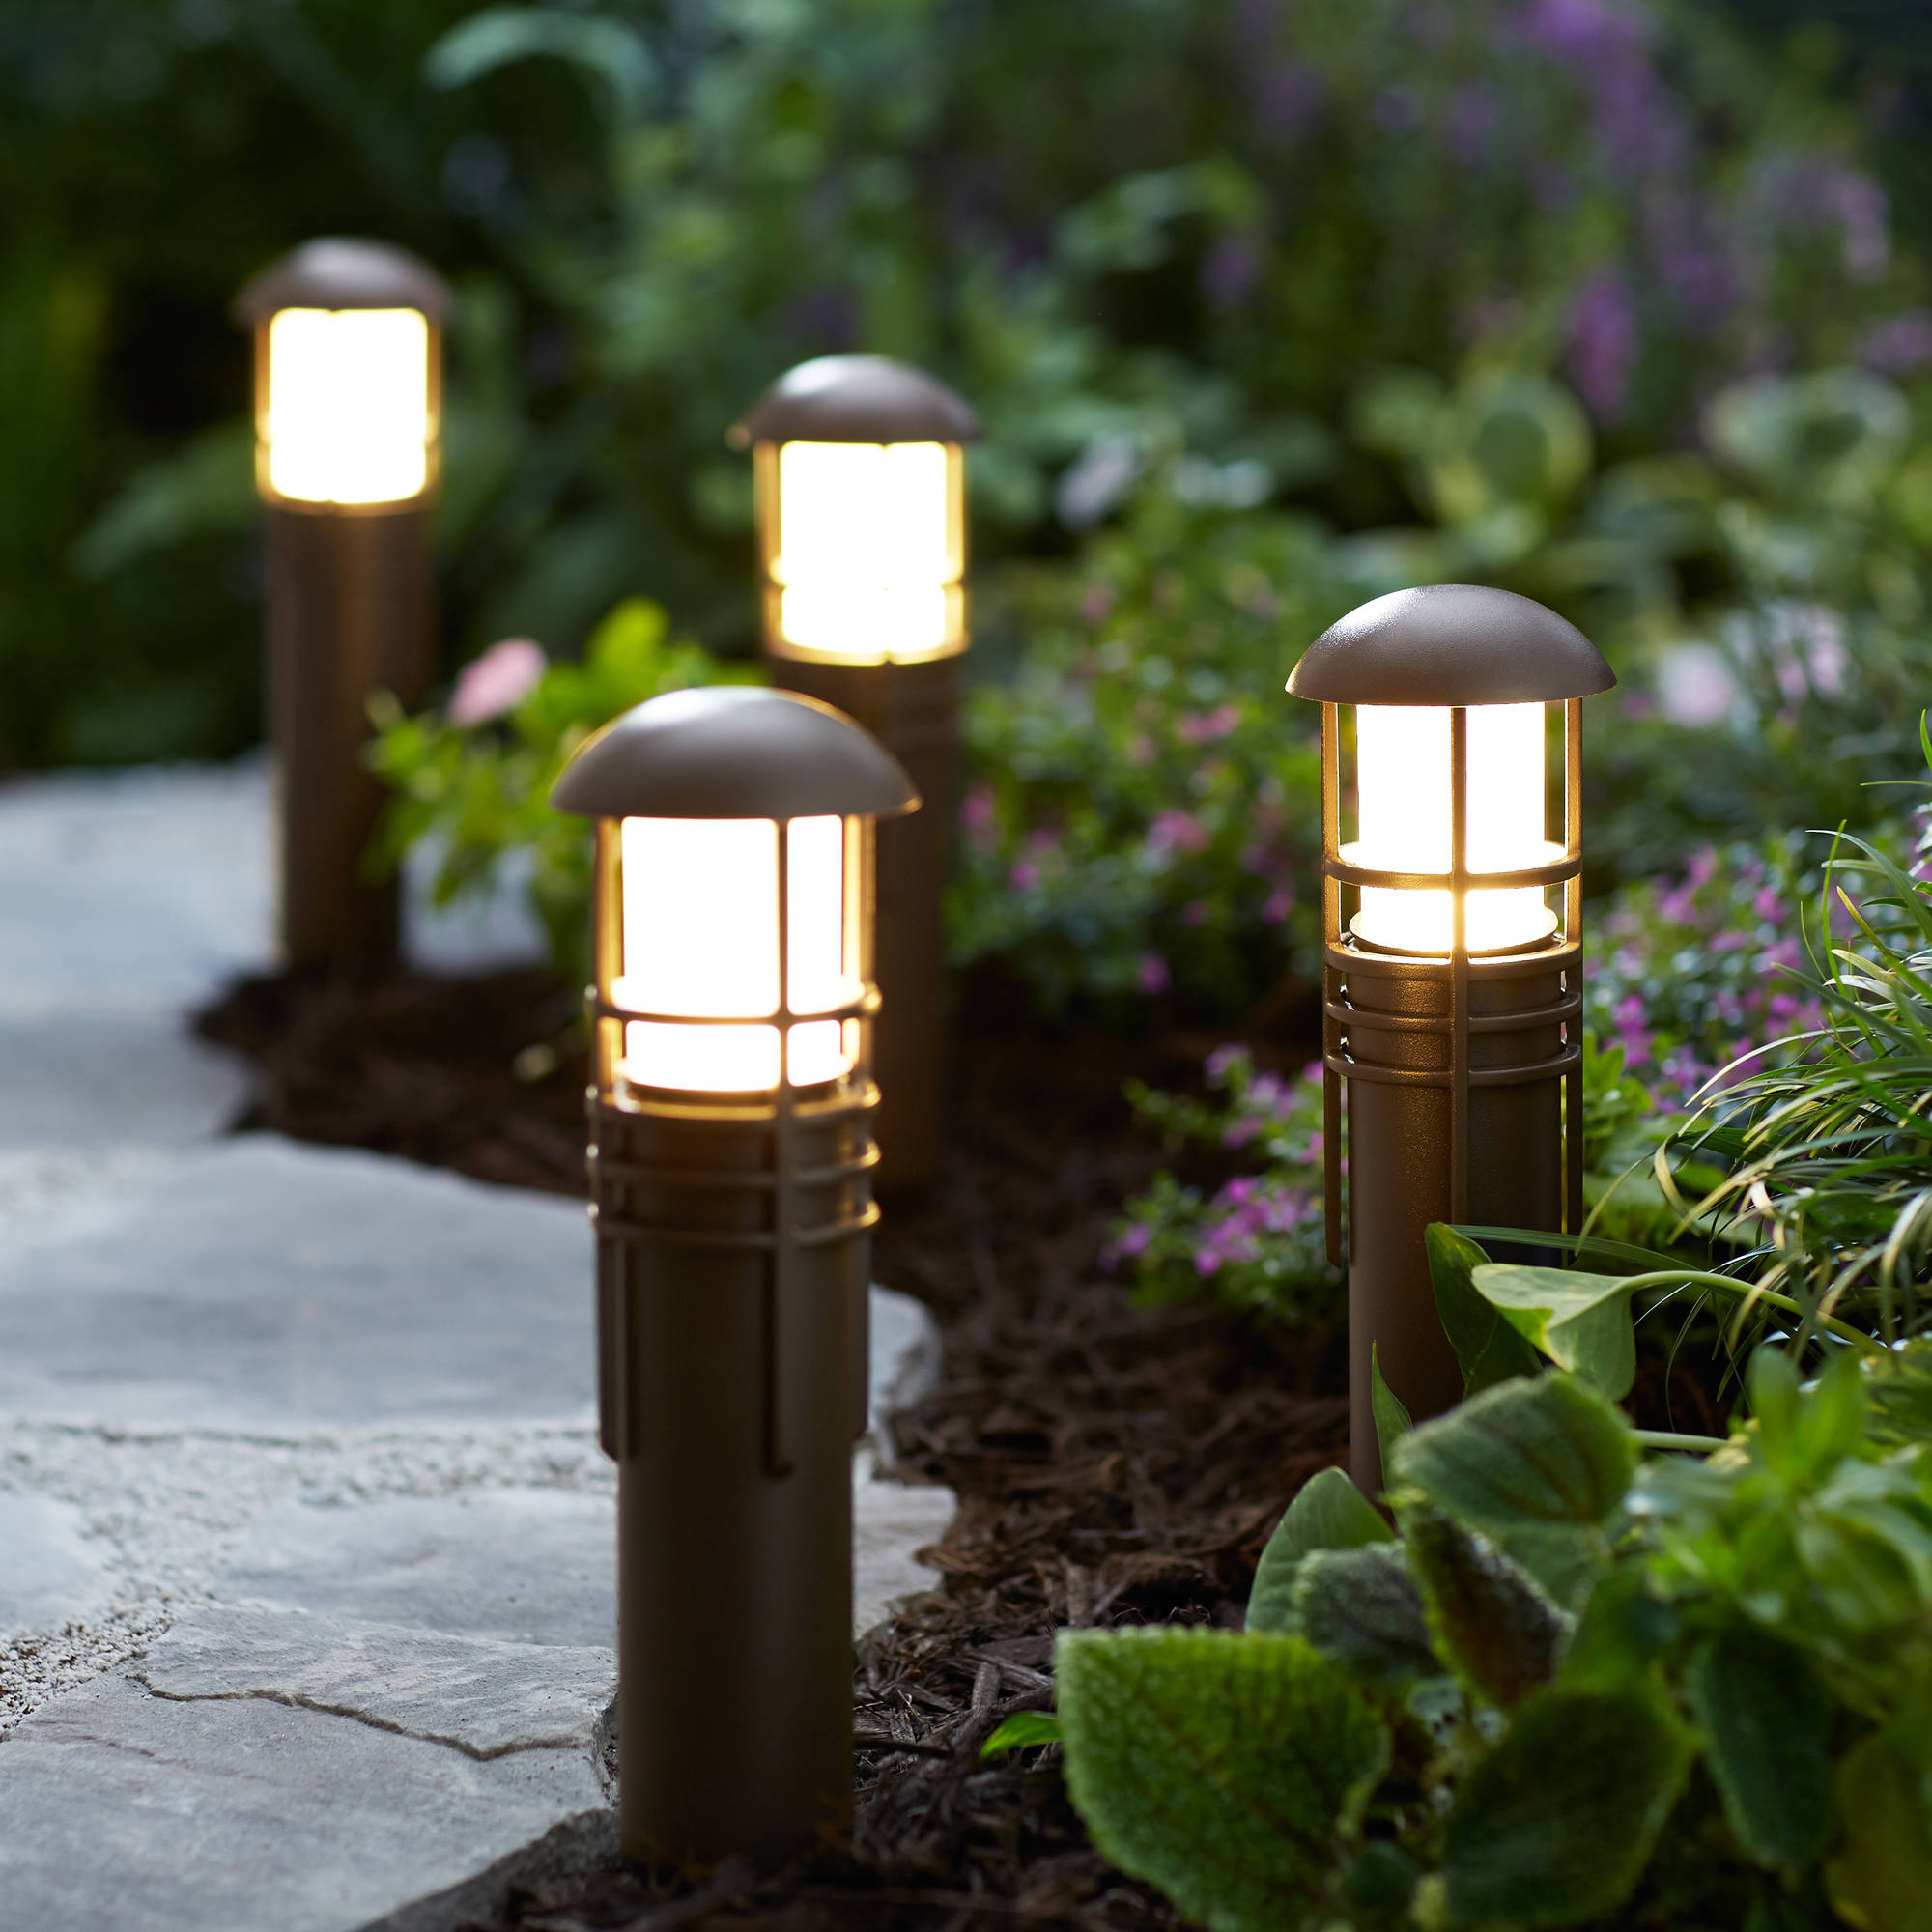 Elegant home depot landscape lighting low voltage - Better homes and gardens solar lights ...